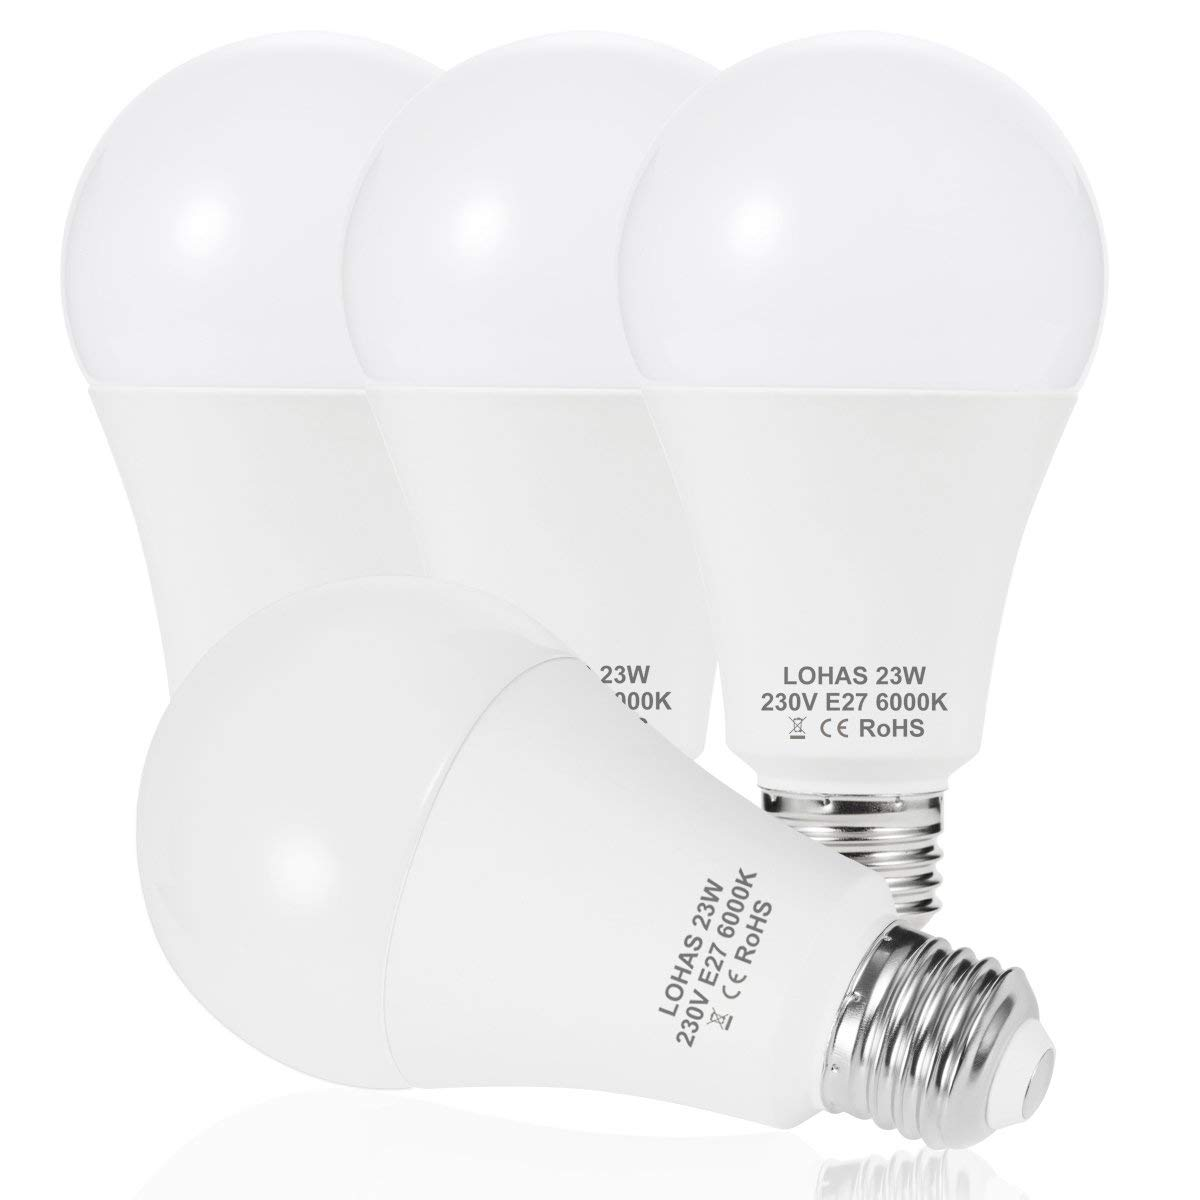 led light bulb a65 e27 edison screw bulbs 200w equivalent. Black Bedroom Furniture Sets. Home Design Ideas